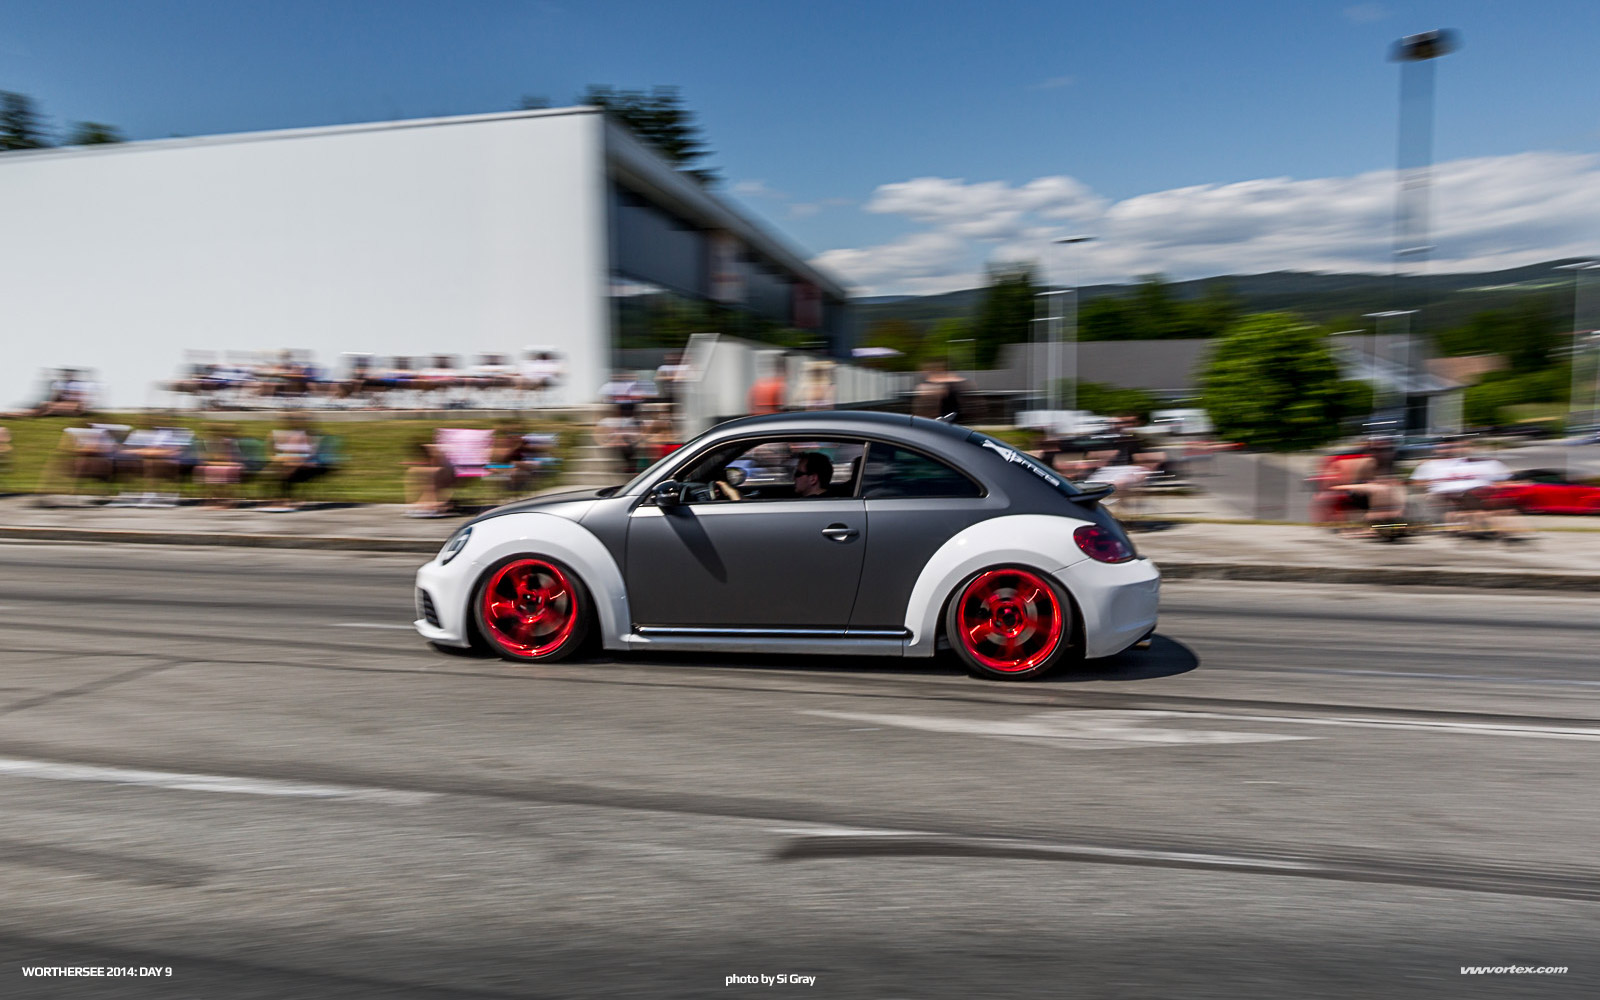 2014-Worthersee-Day-9-Si-Gray-395